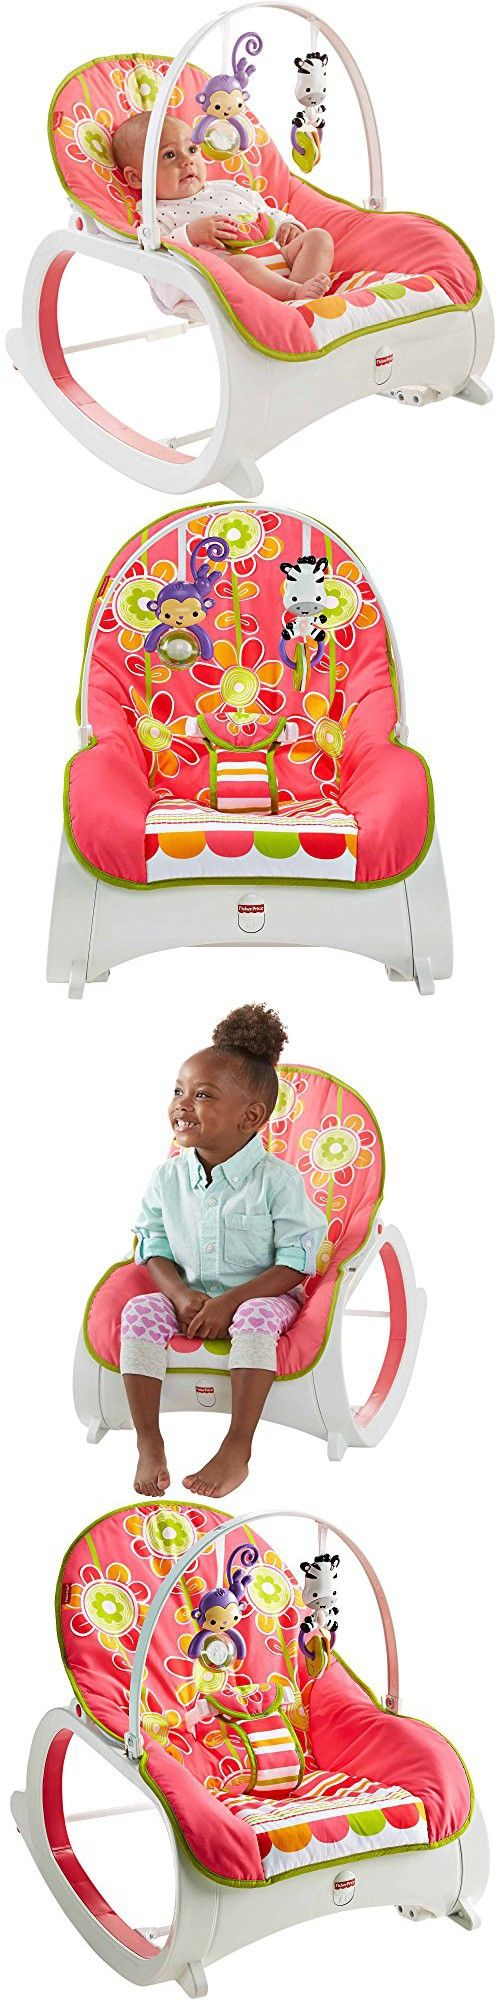 Uncategorized fisher price comfort curve bouncer new free shipping ebay - Fisher Price Floral Confetti Baby Infant Toddler Girls Swings Bouncers And Rocker Sleeper With Toy